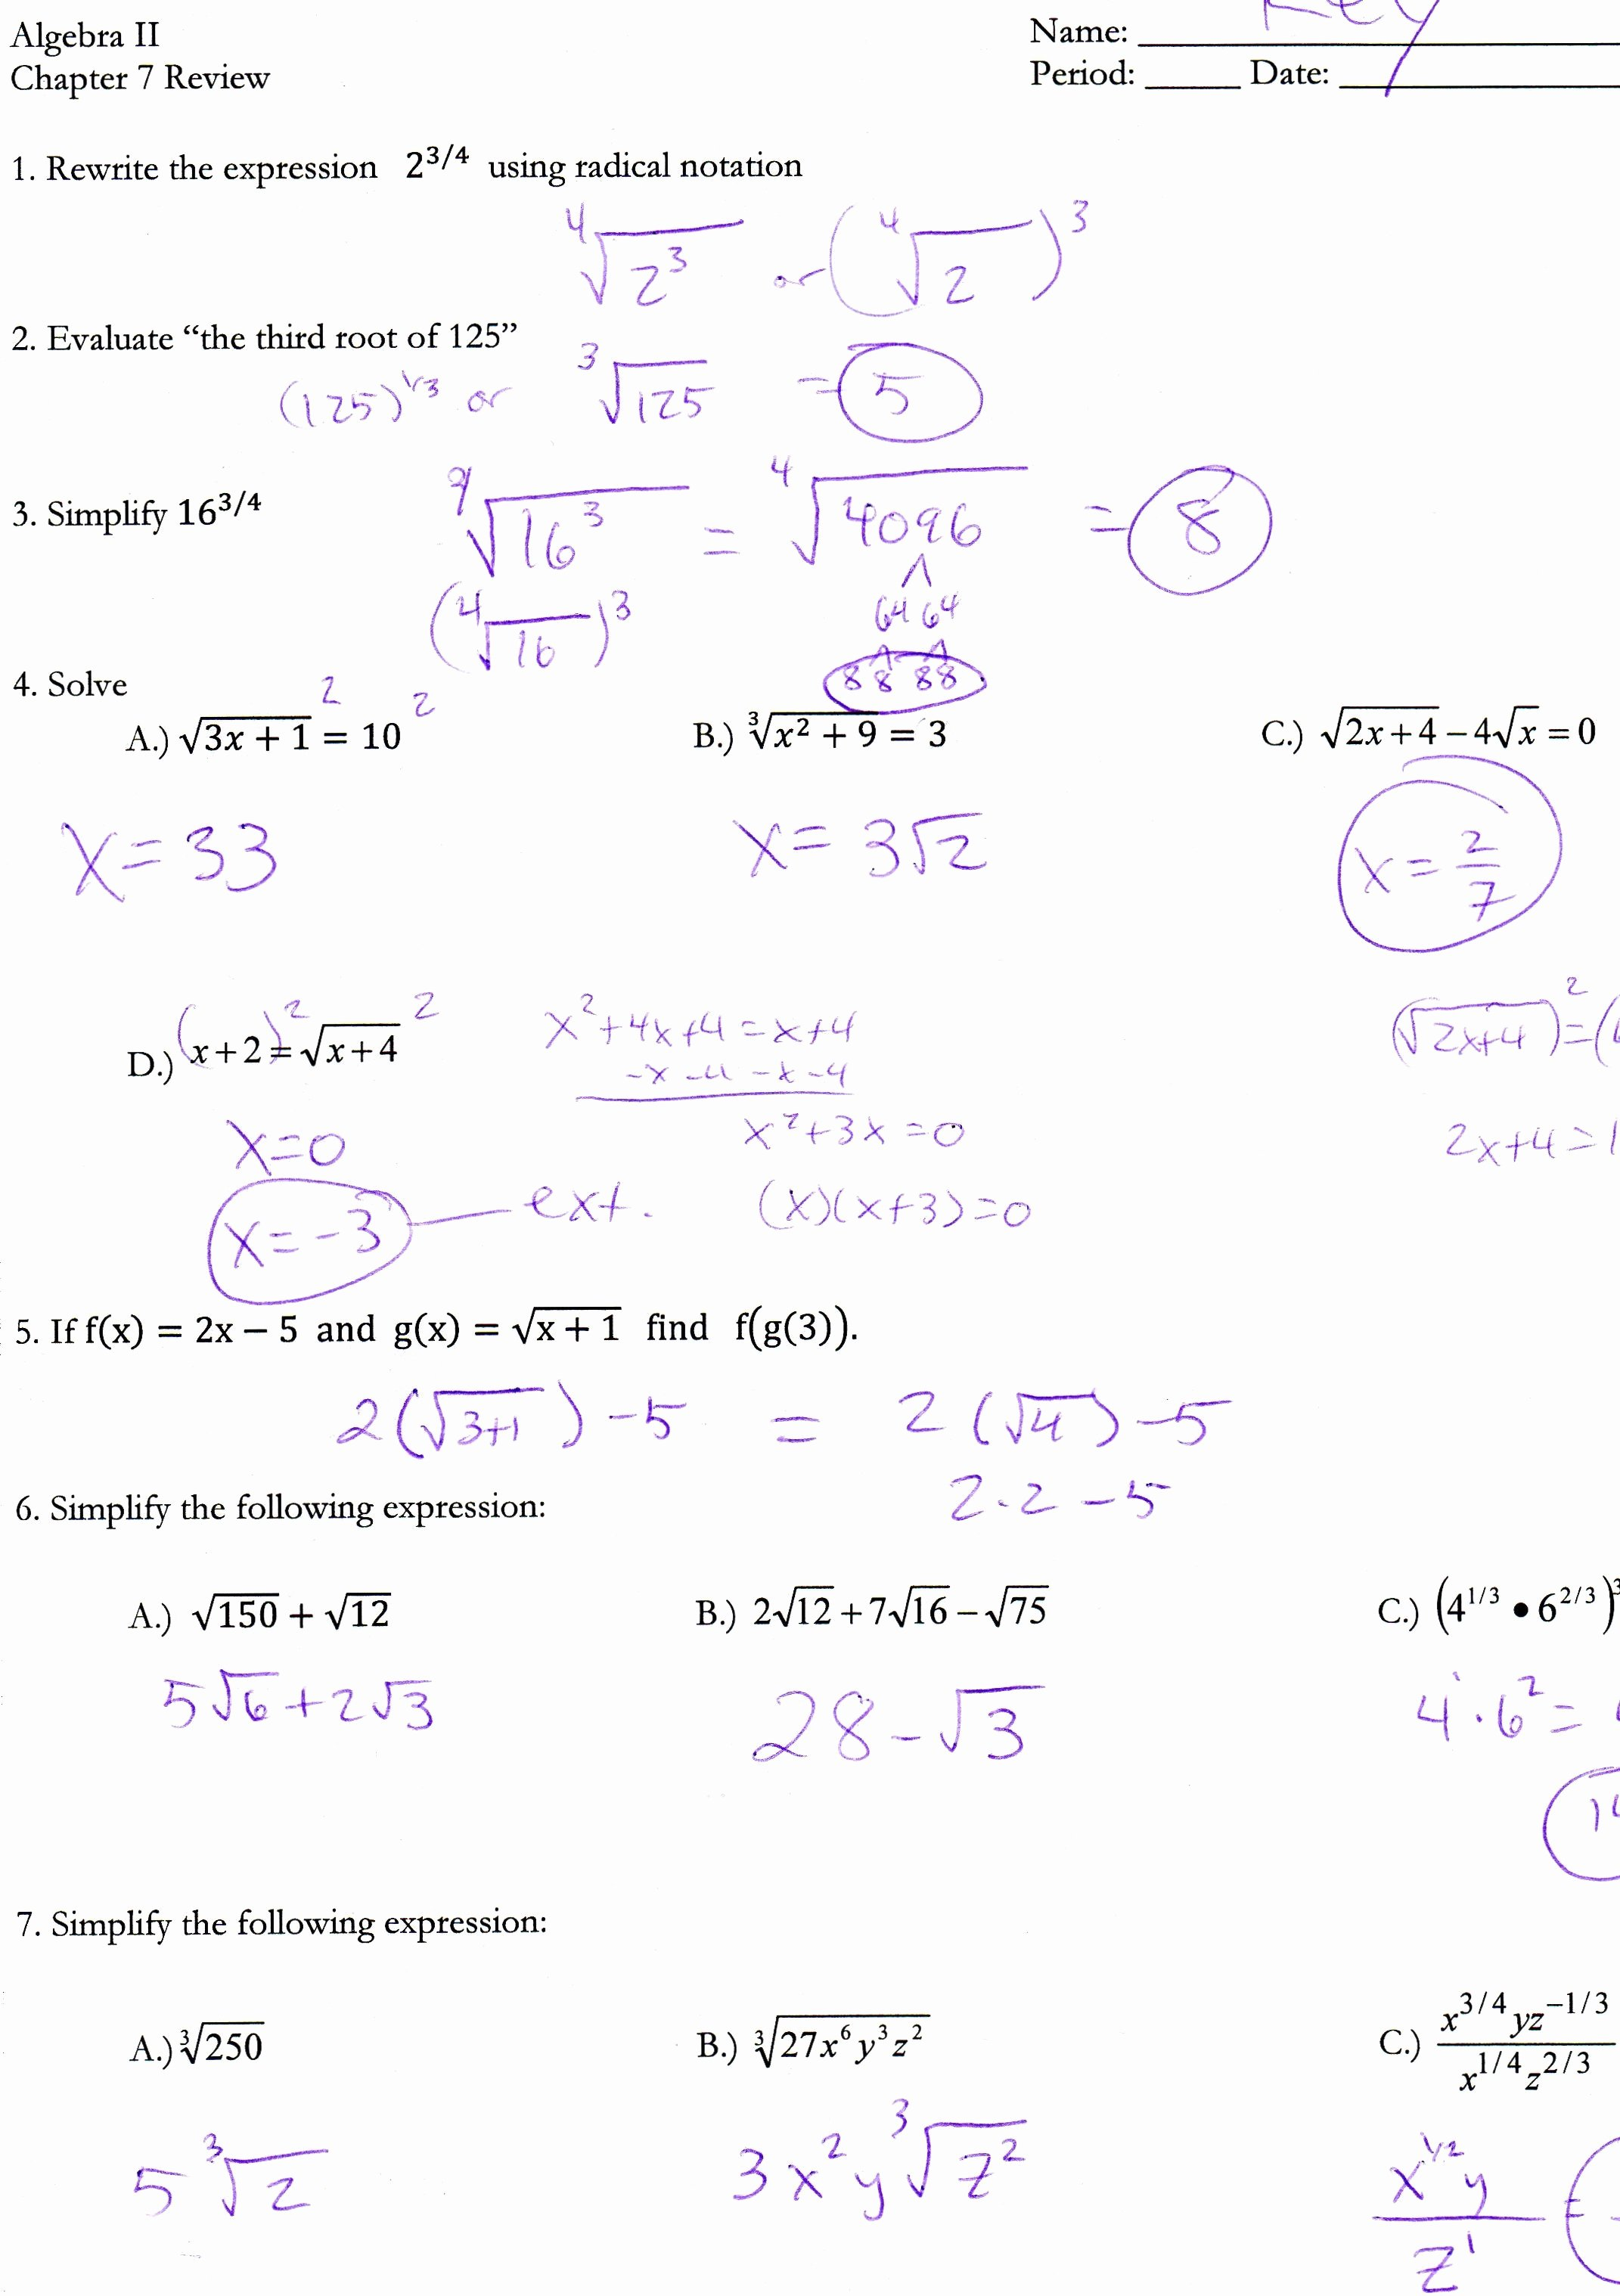 Solving Equations Review Worksheet Awesome Radicals